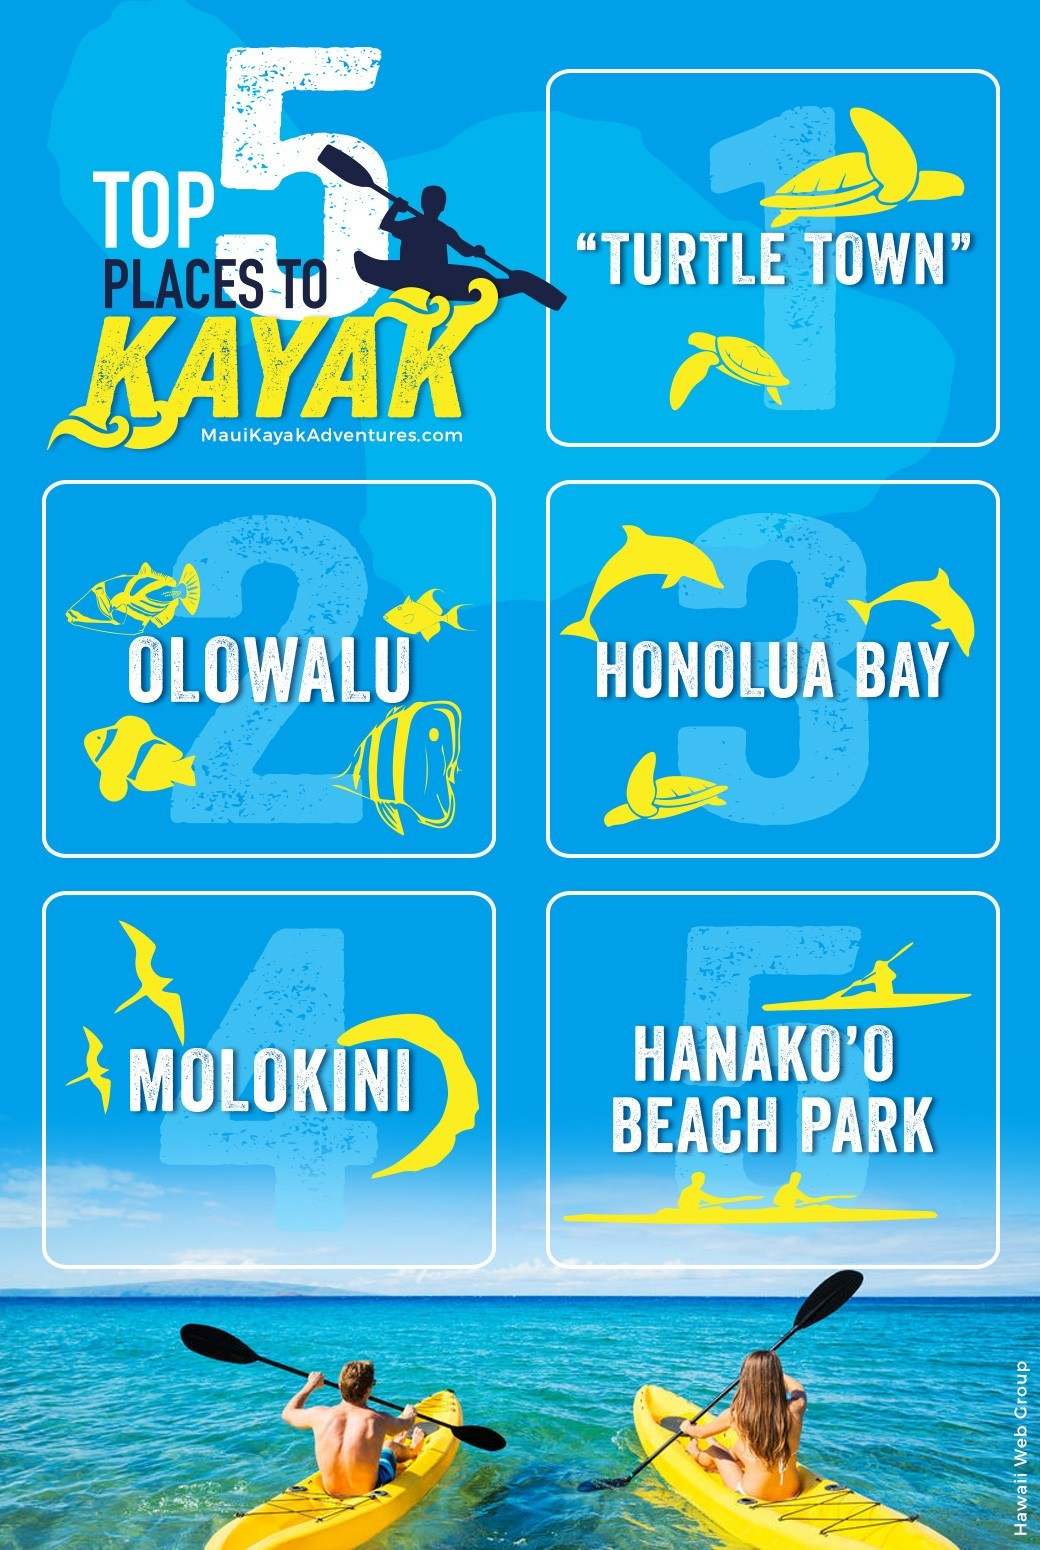 Top Places Maui Kayaking